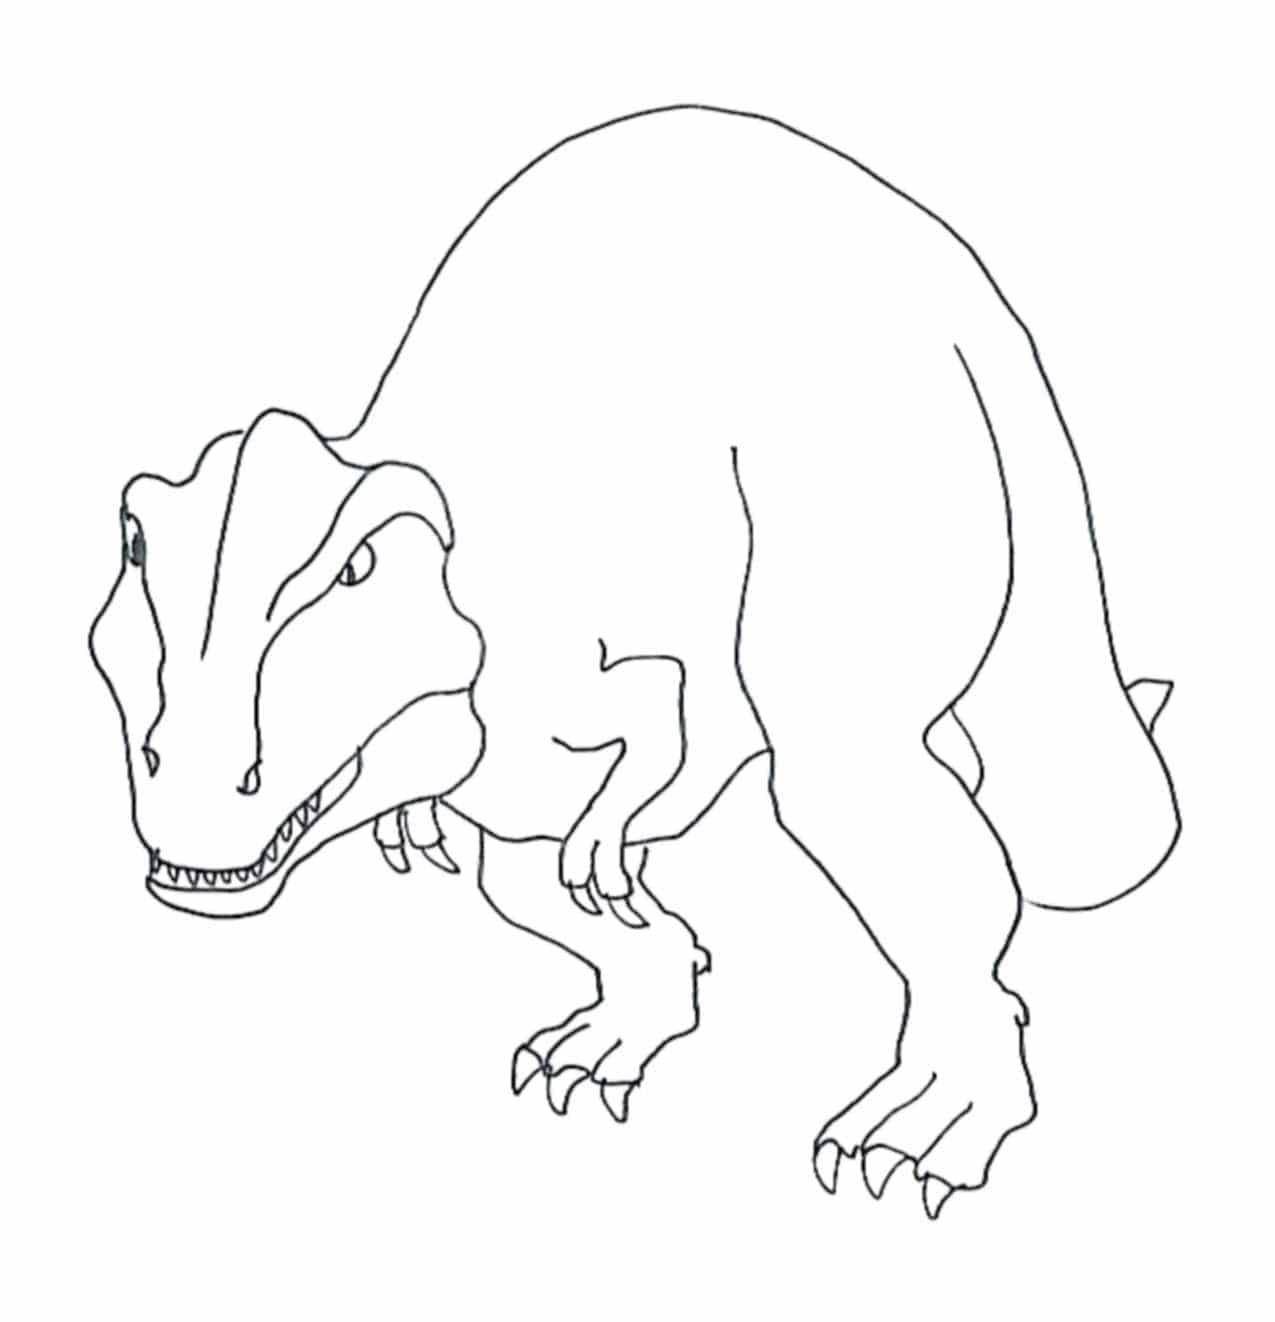 kids t rex coloring page angry tyrannosaurus rex coloring pages for kids printable kids coloring rex t page